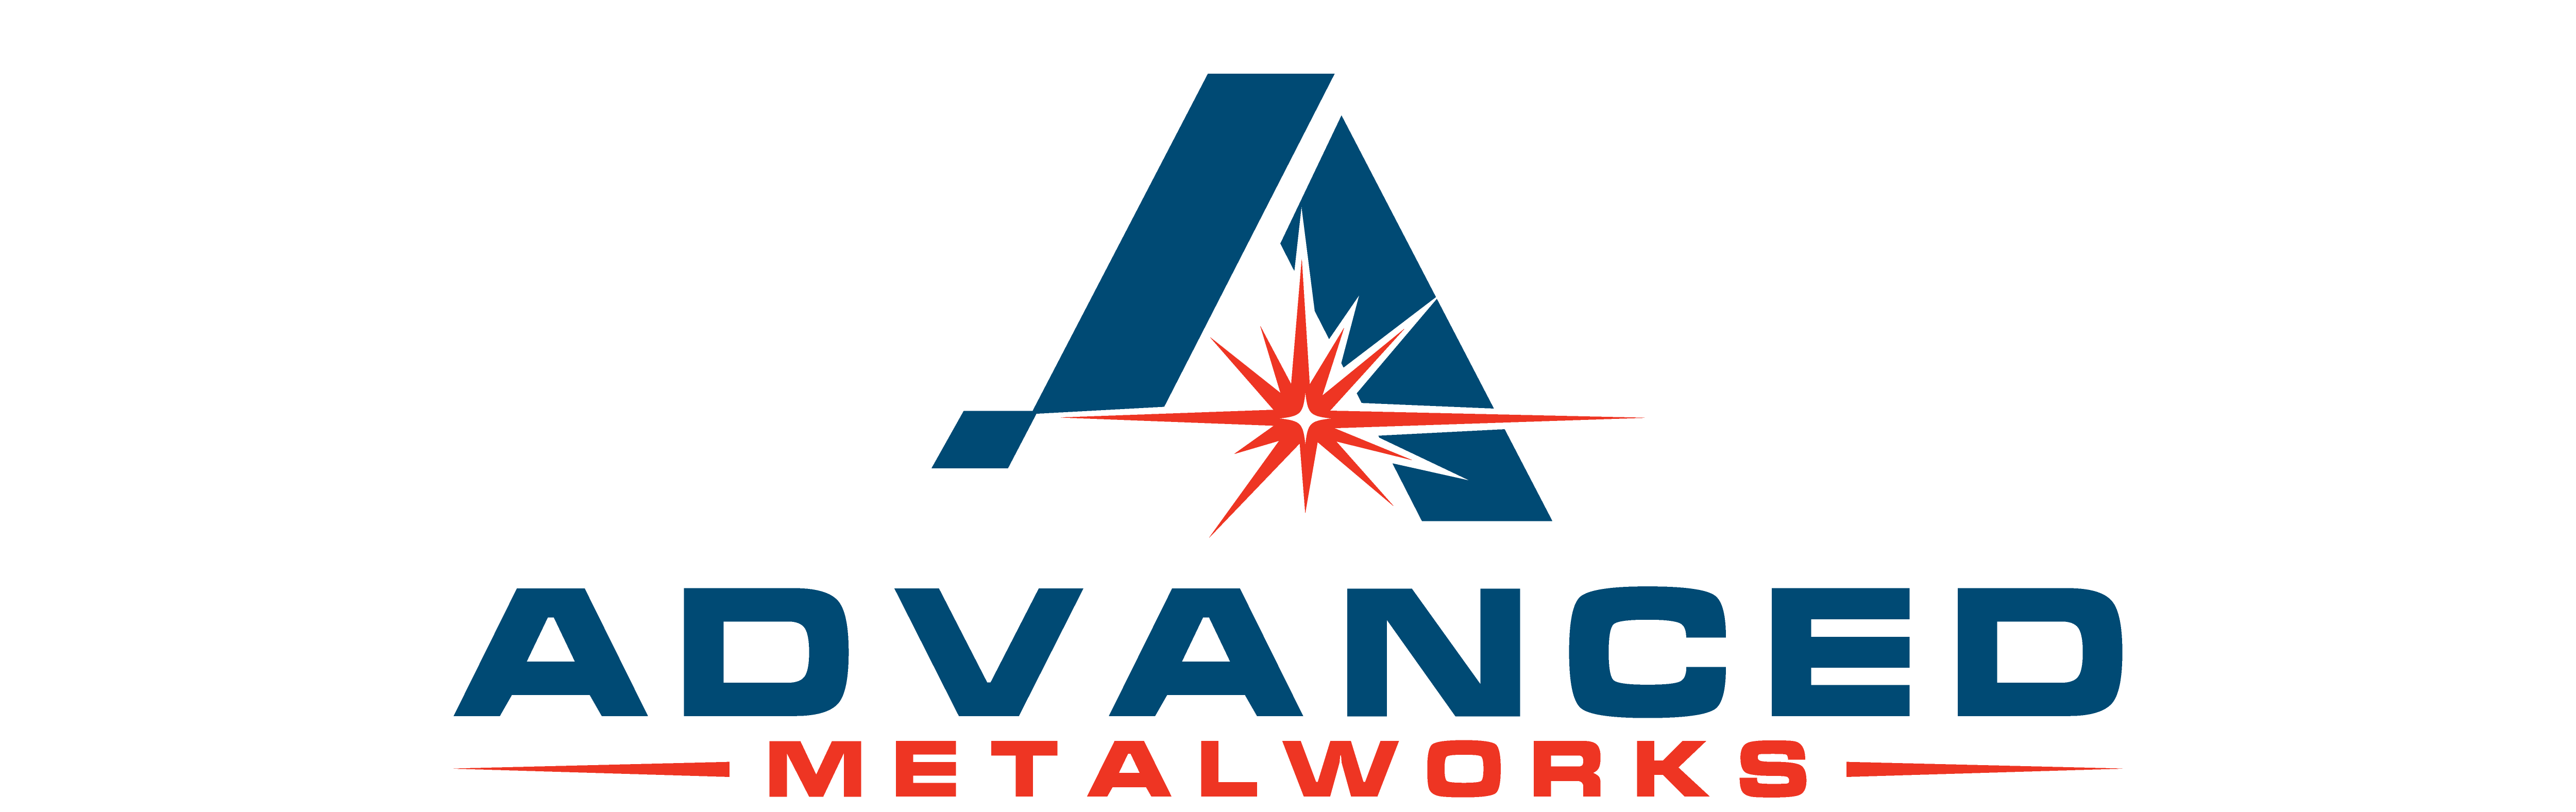 Advanced Metalworks LLC